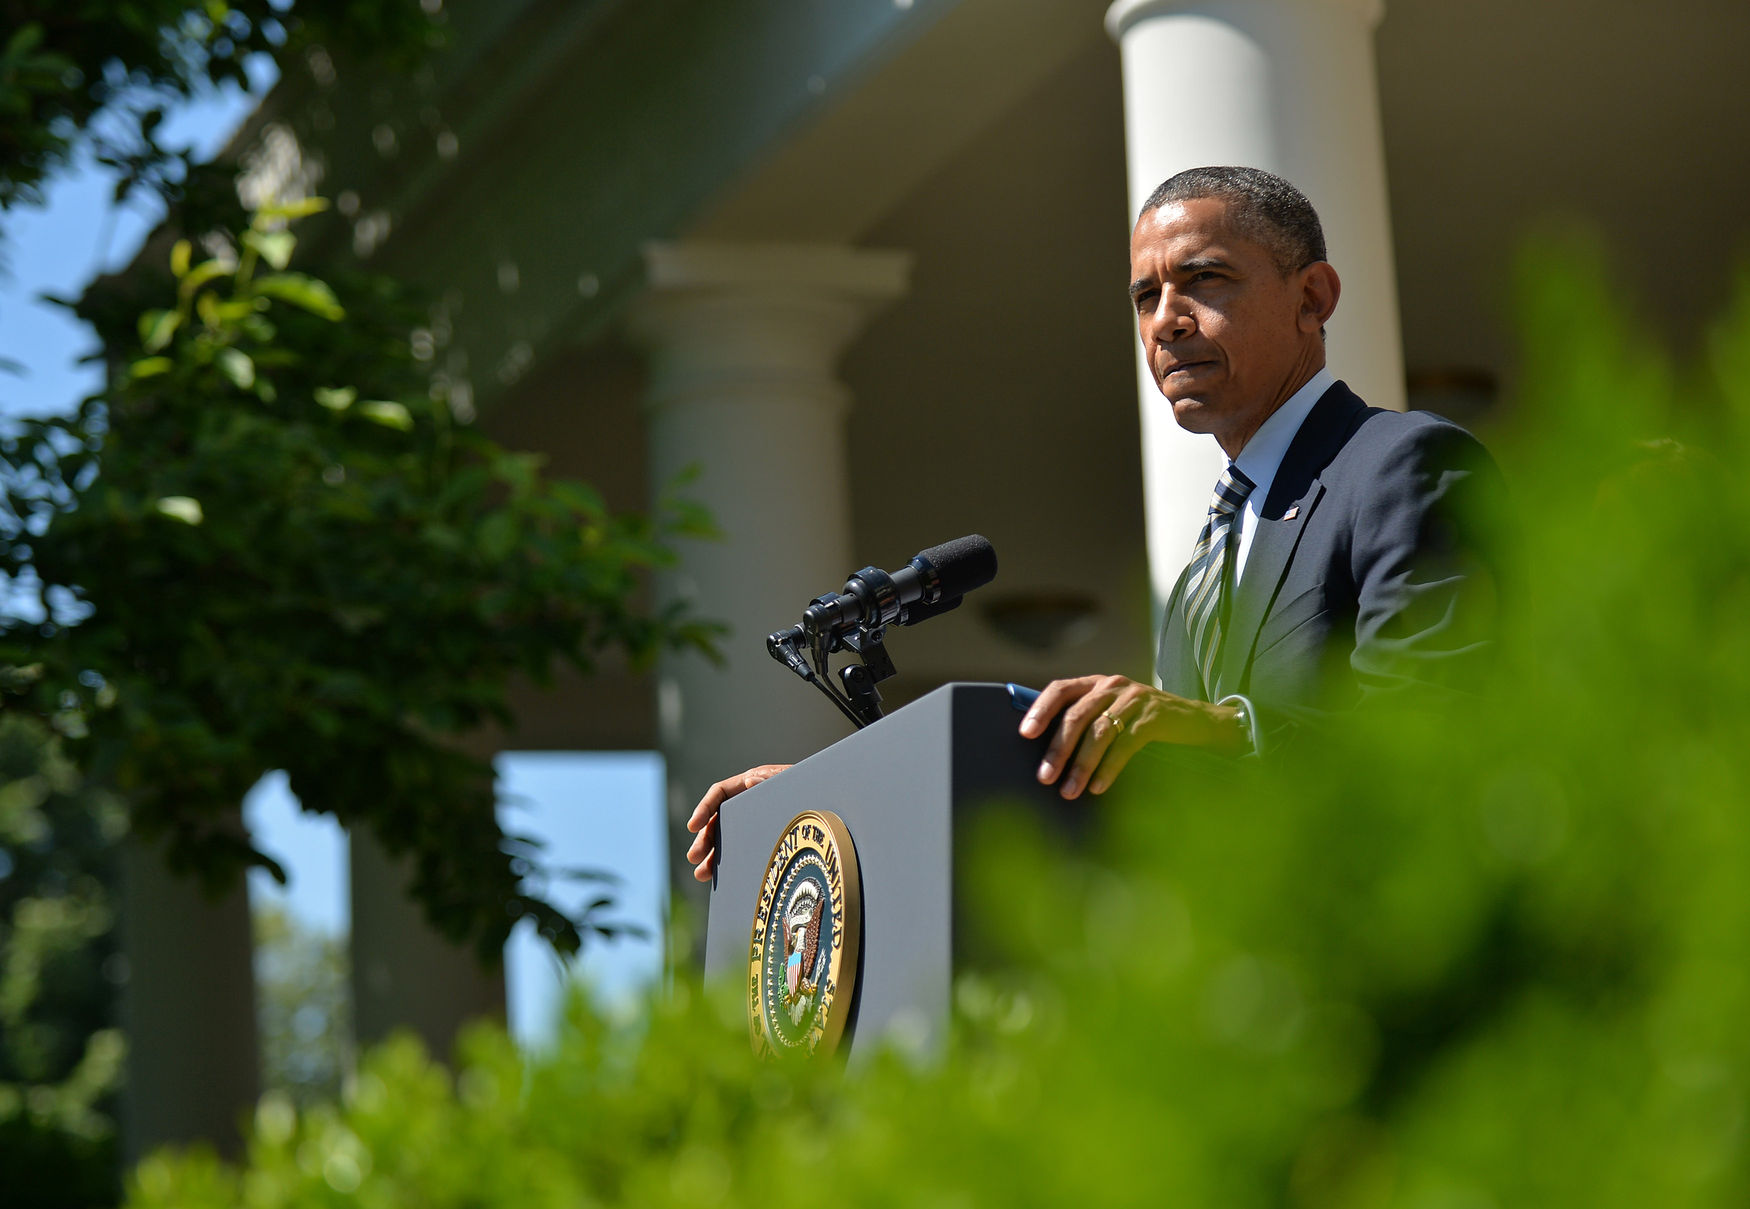 President Obama speaks on Student Loans in Washington